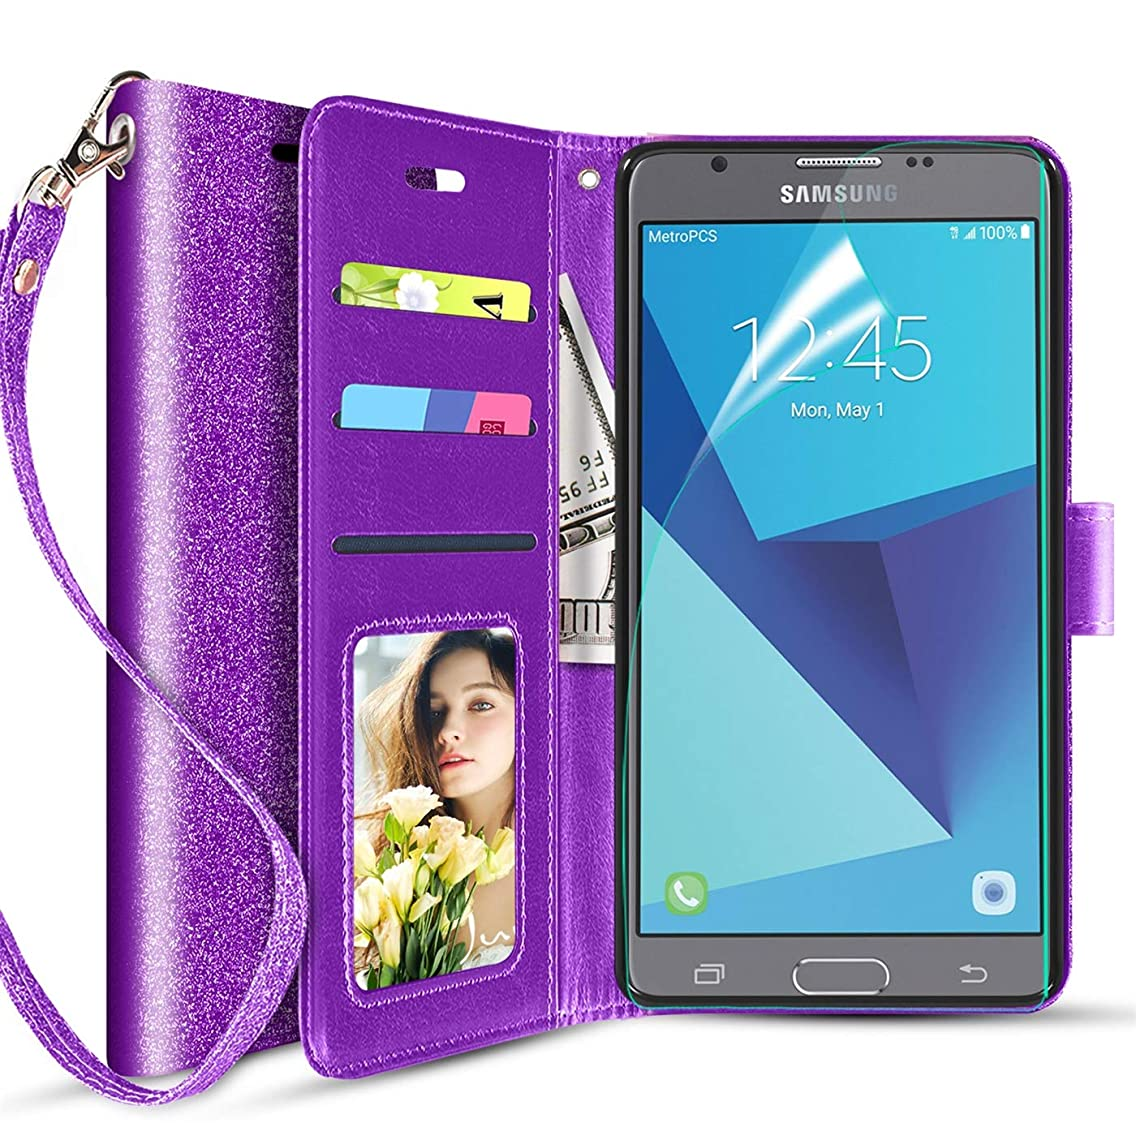 Galaxy J7 2017/J7 V/J7 Perx/J7 Sky Pro/J7 Prime/Galaxy Halo Case w/Built-in Screen Protector Refine Rugged Luxury PU Leather Magnetic Flip Crown Star Bling Full-Body Protective Cover-Purple